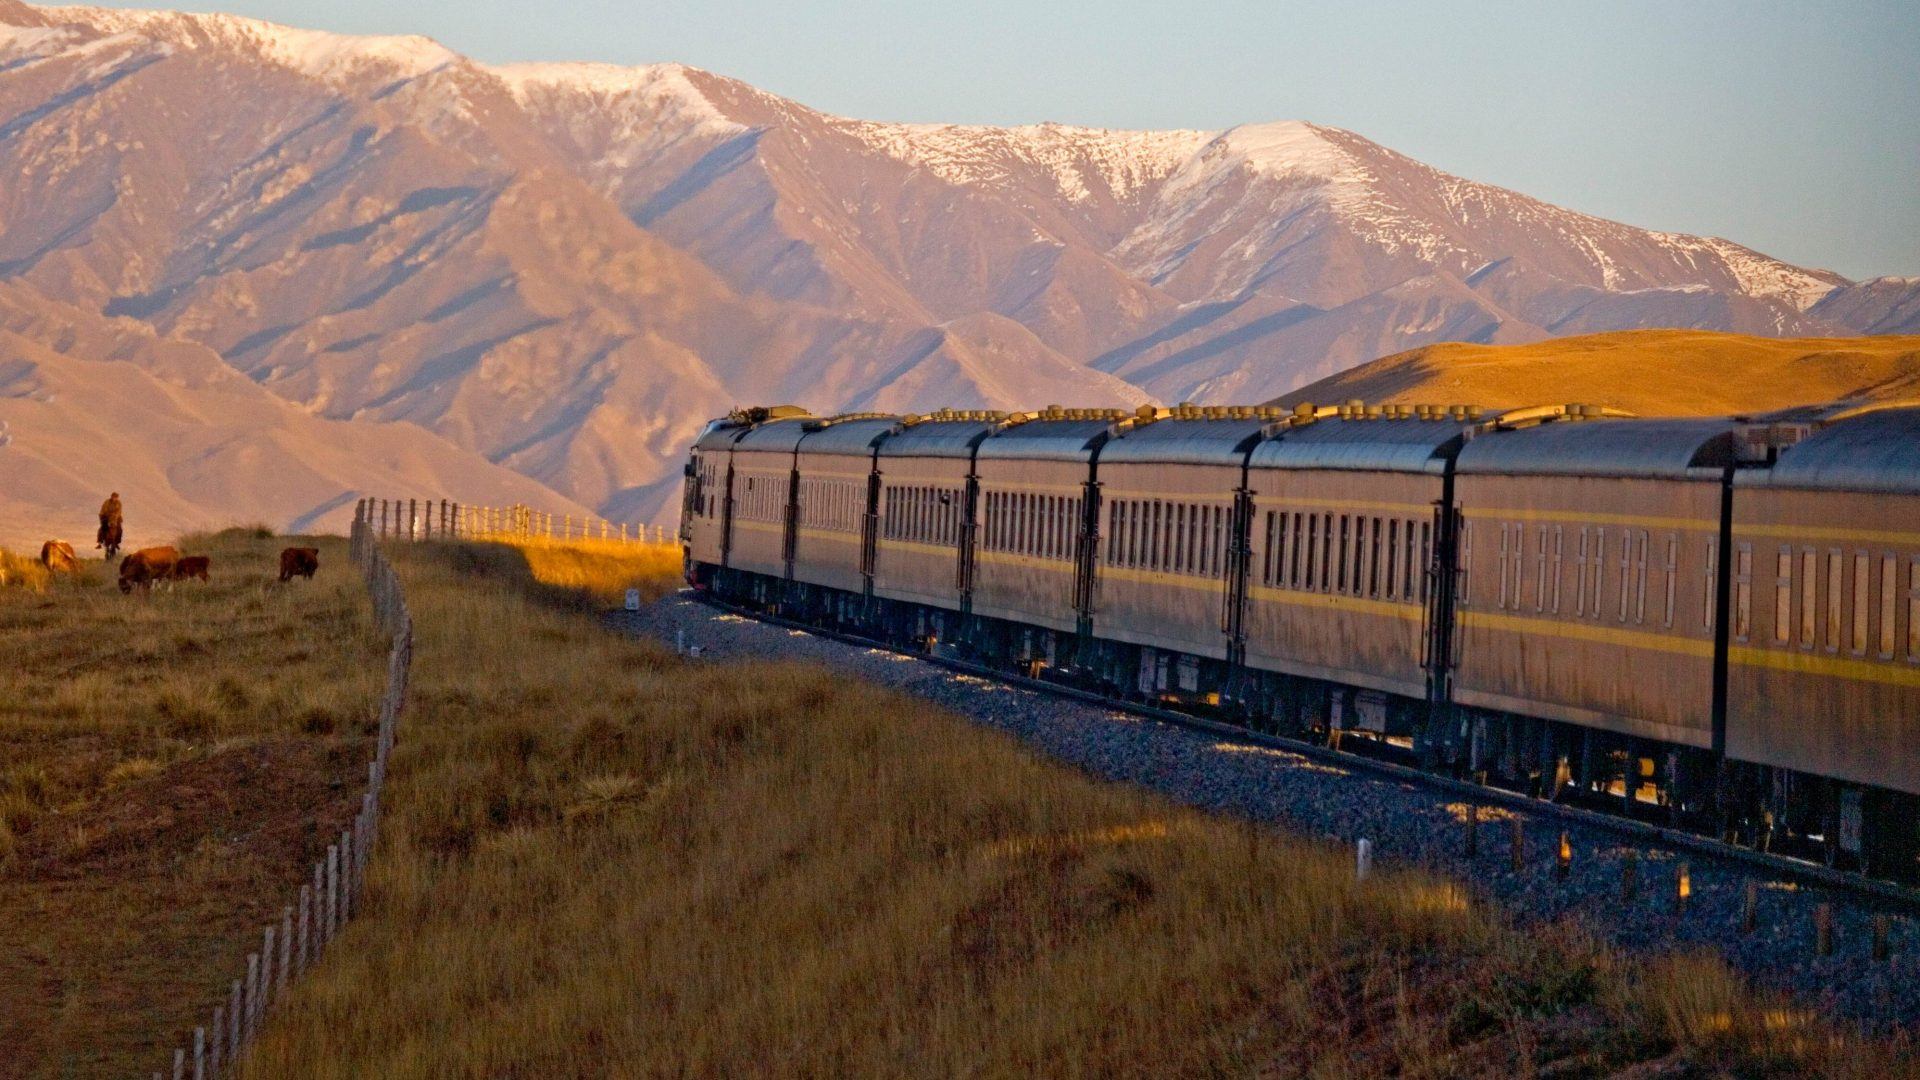 Golden Eagle Shangri-La Express luxury train traveling along the Silk Road